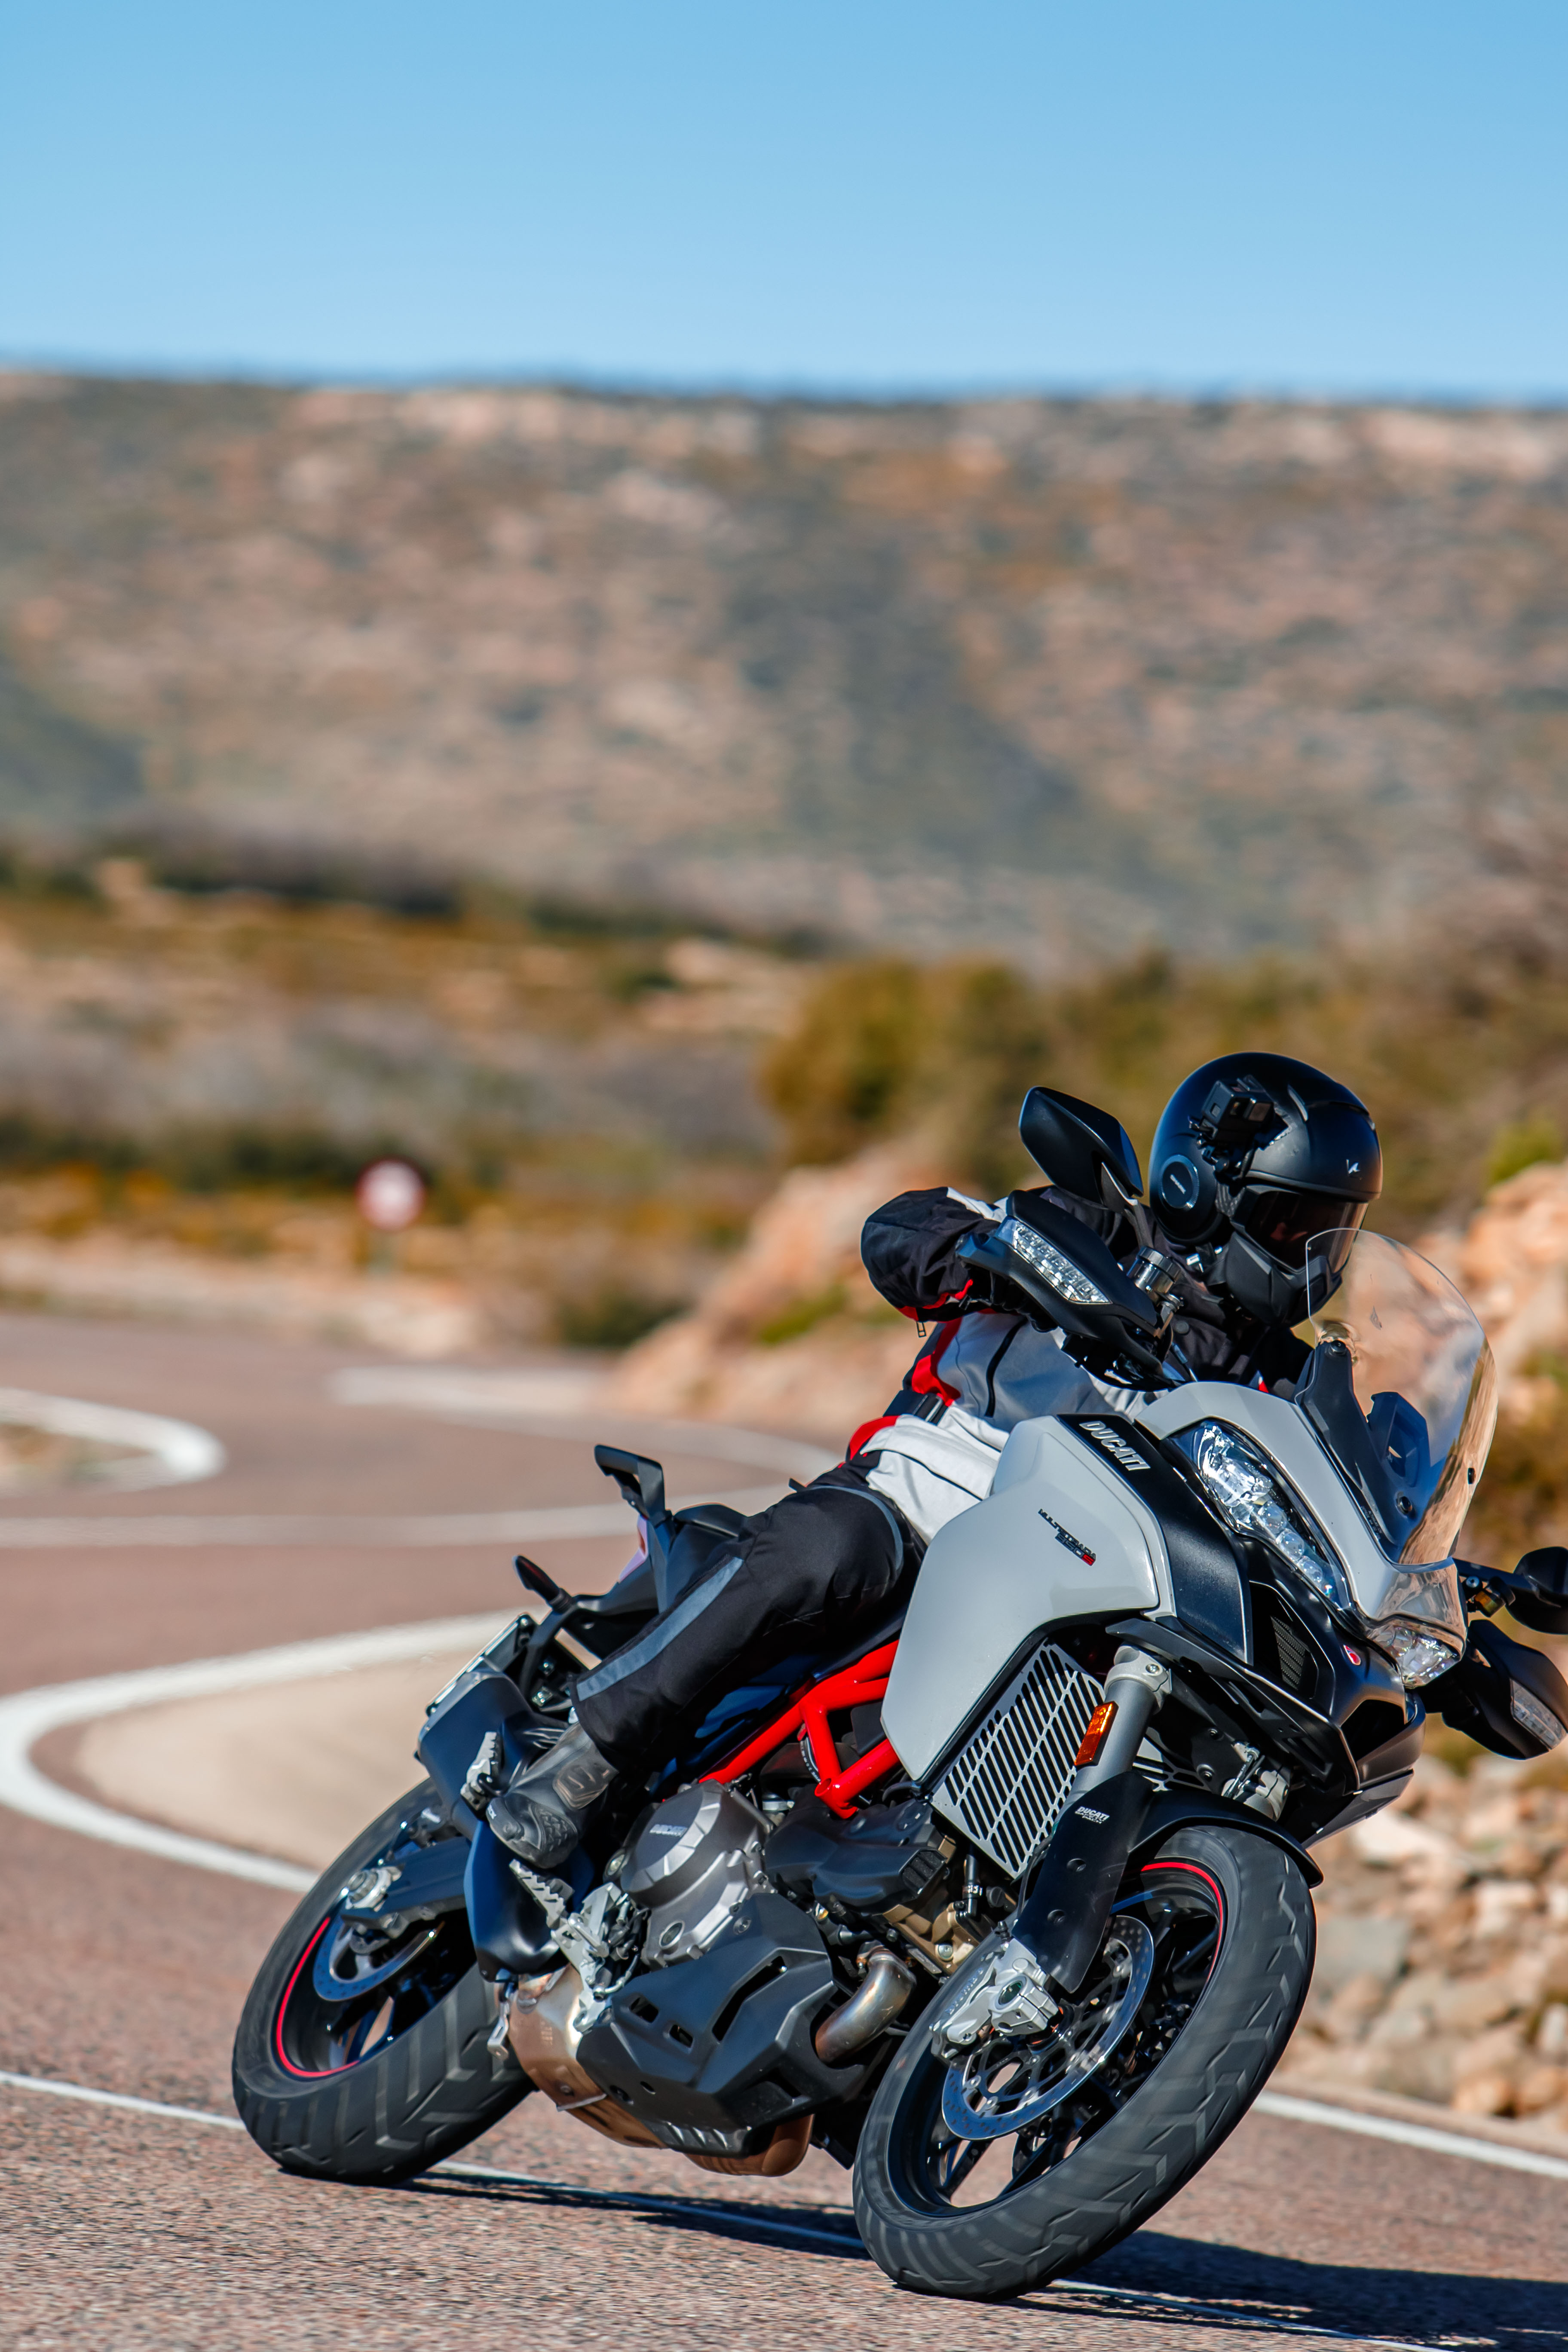 Suspension Multiple Design Ducati 950s Packs A Punch With Active Suspension Cornering Abs